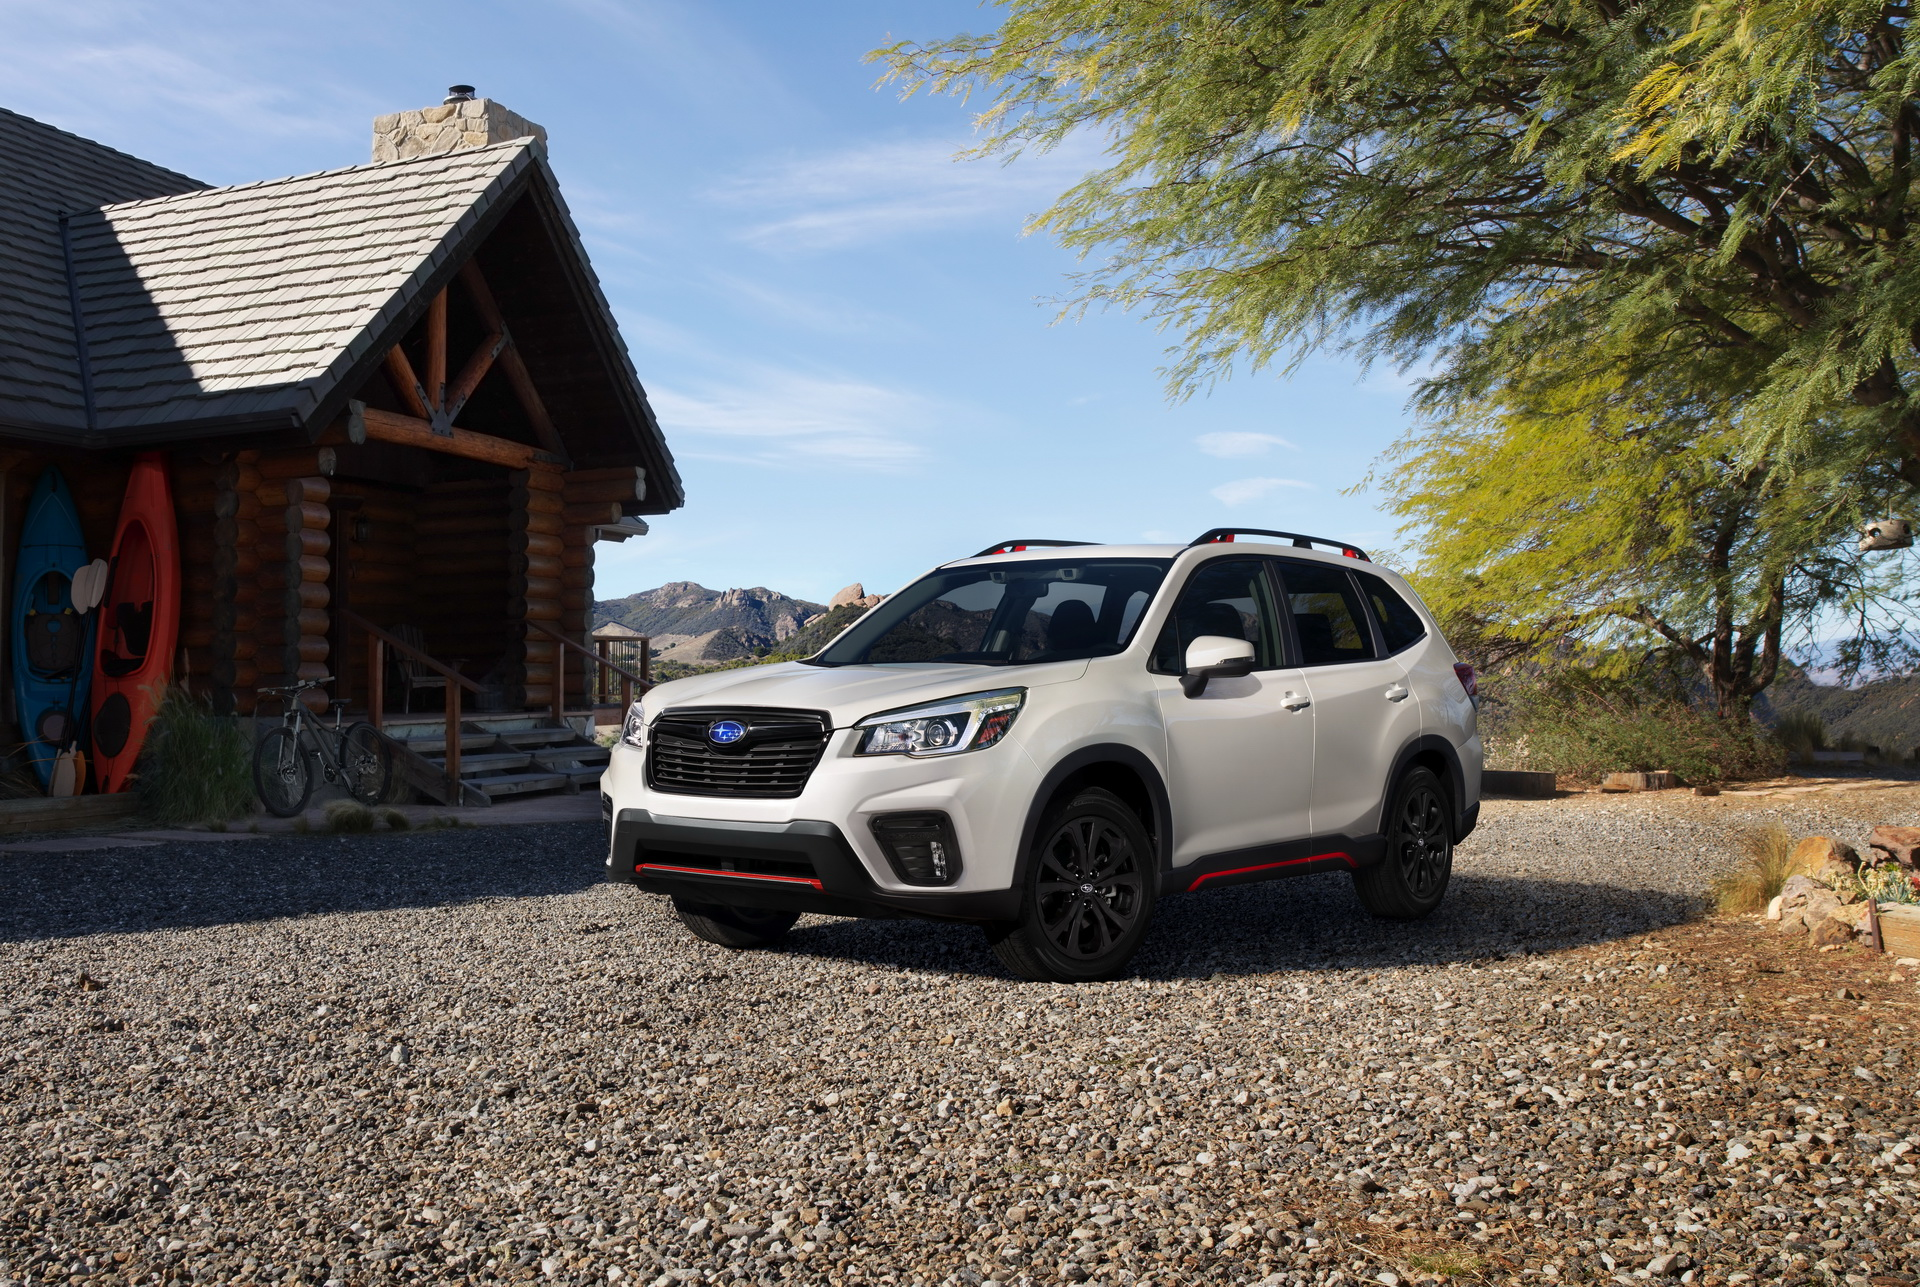 Subaru showed the Forester crossover optics of the new generation